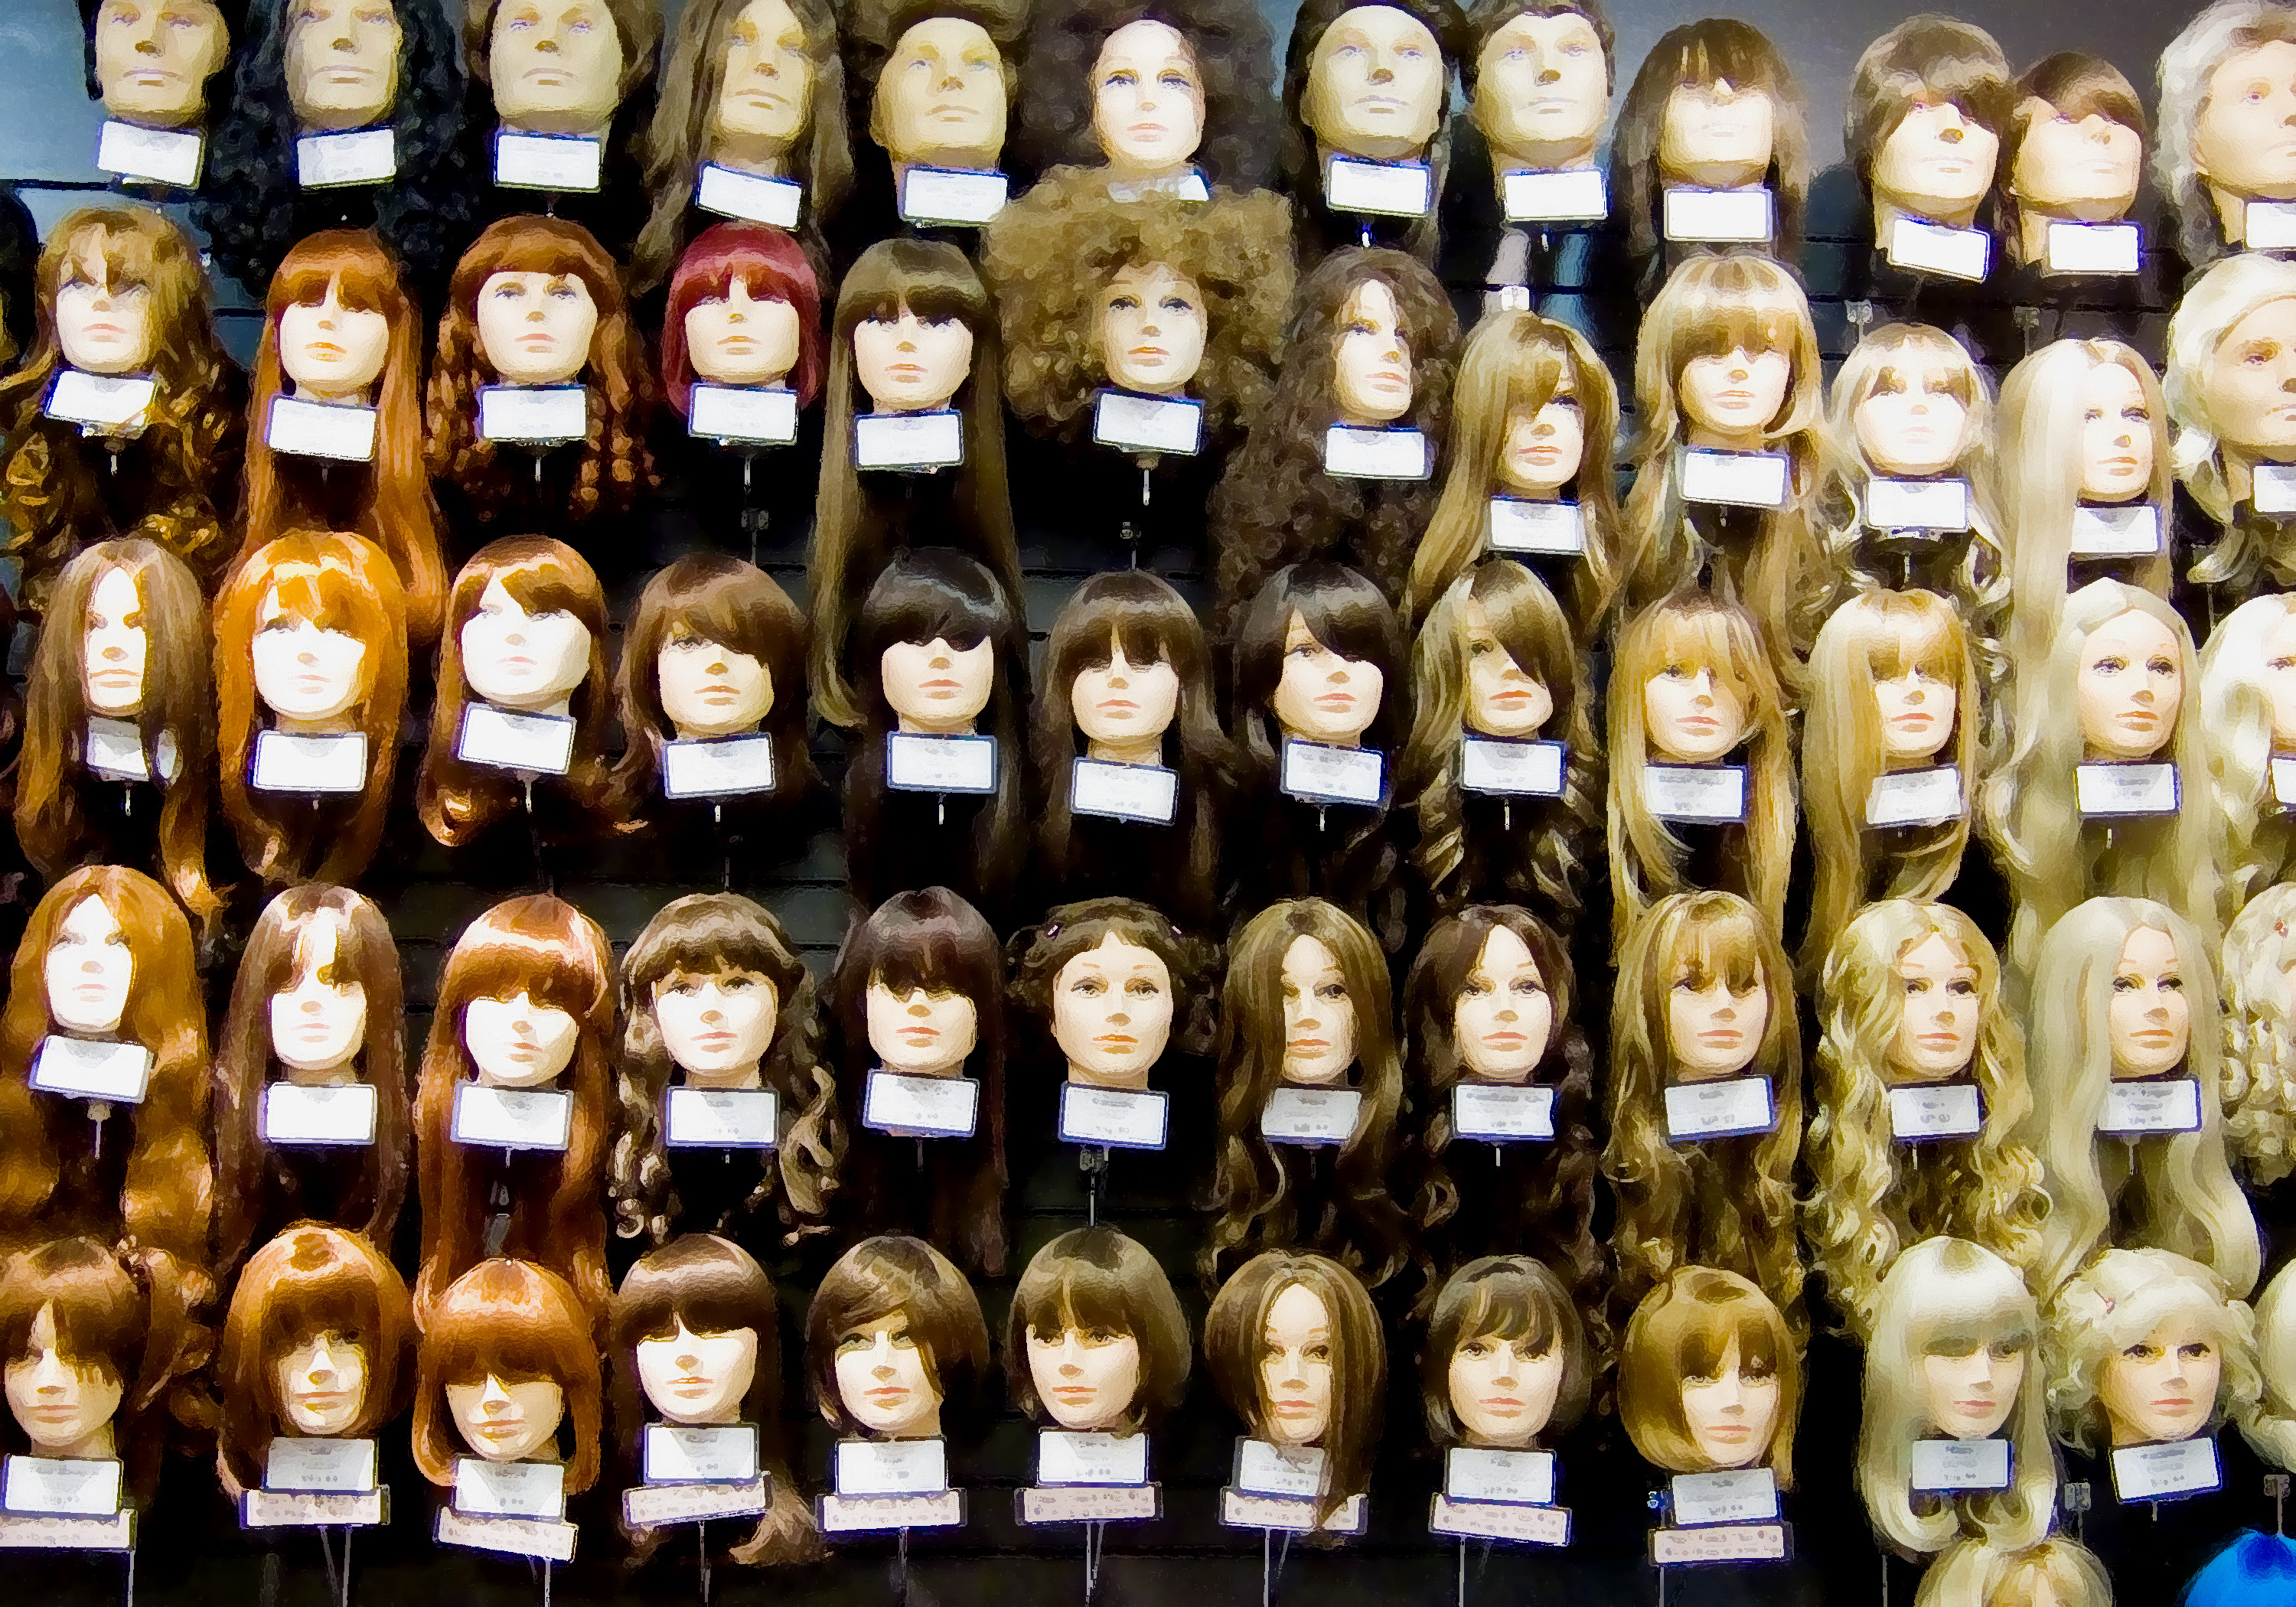 File:Types of human hair wigs.jpg - Wikimedia Commons